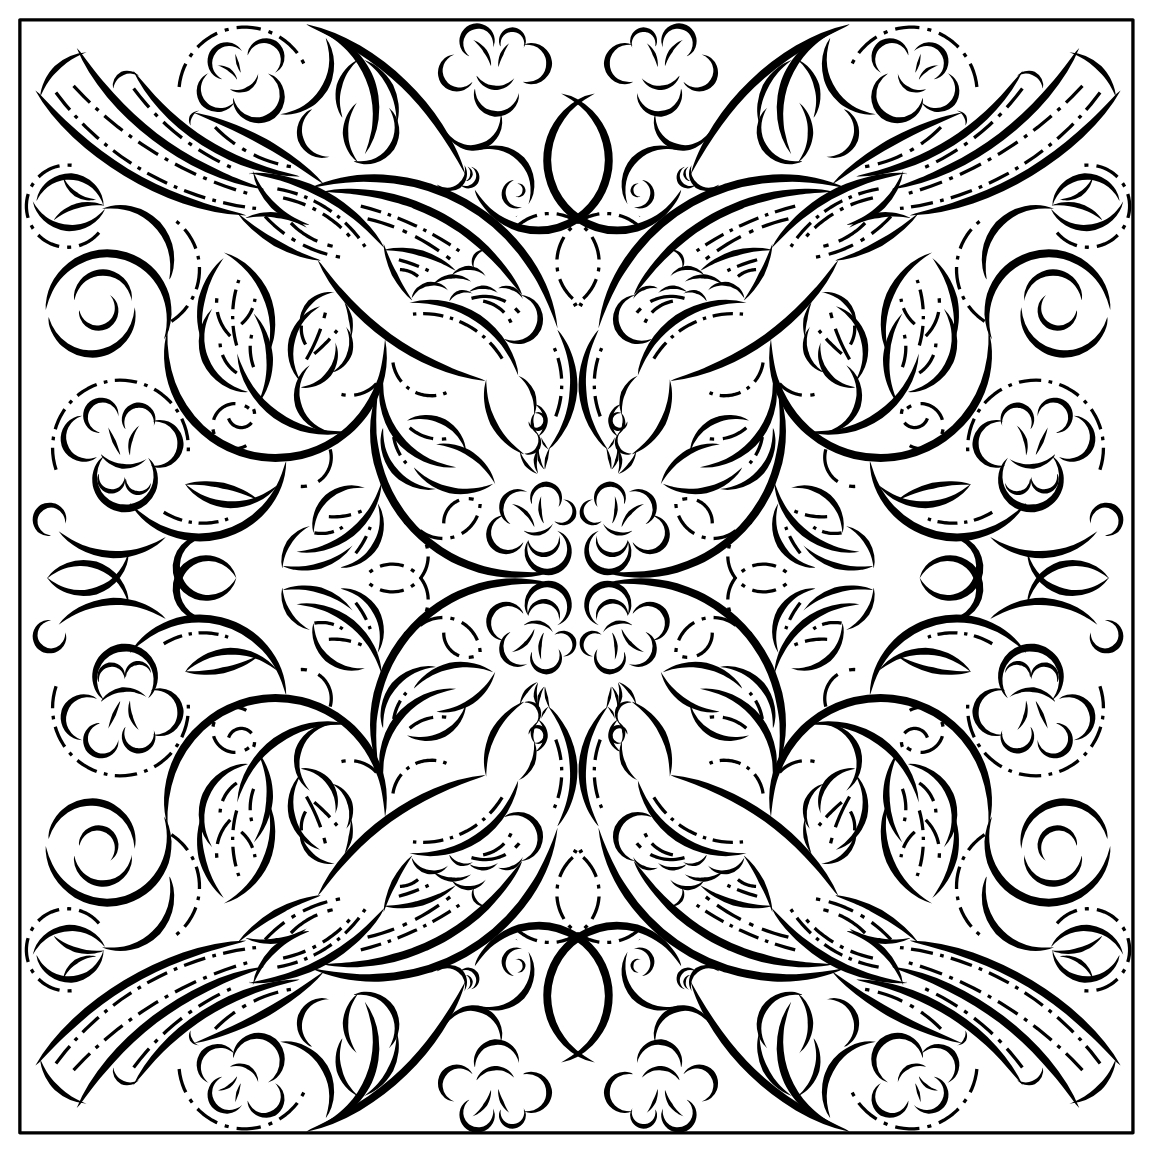 symmetry colouring sheets nicole39s free coloring pages symmetry coloring pages sheets symmetry colouring